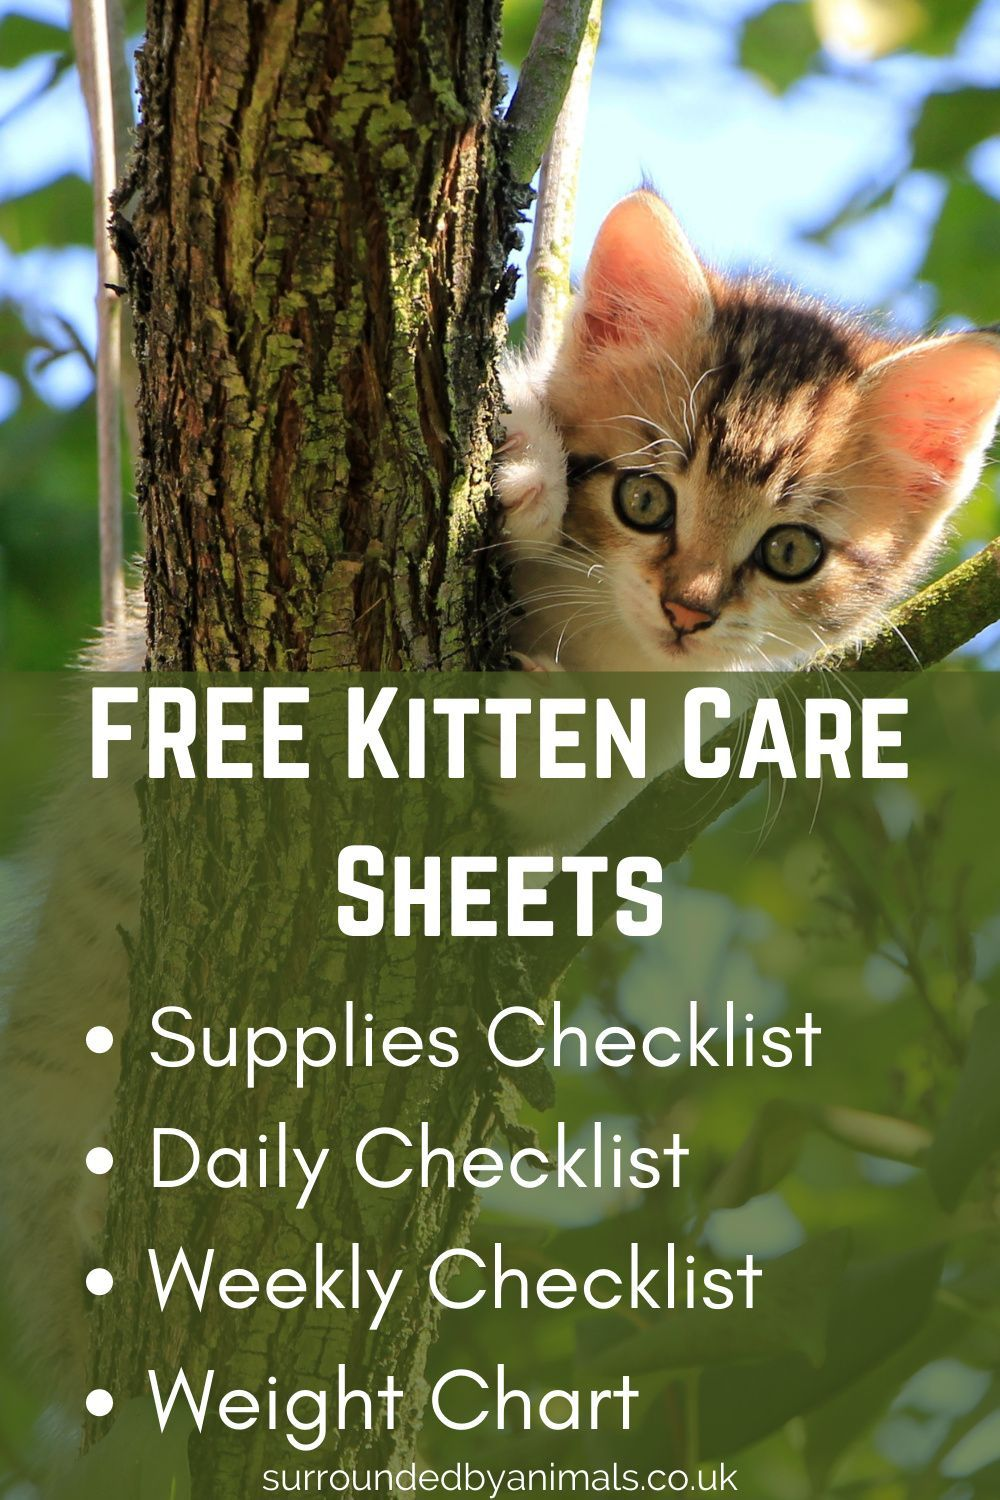 Get Our Free Kitten Care Sheets In 2020 Kitten Care Kitten Weight Charts